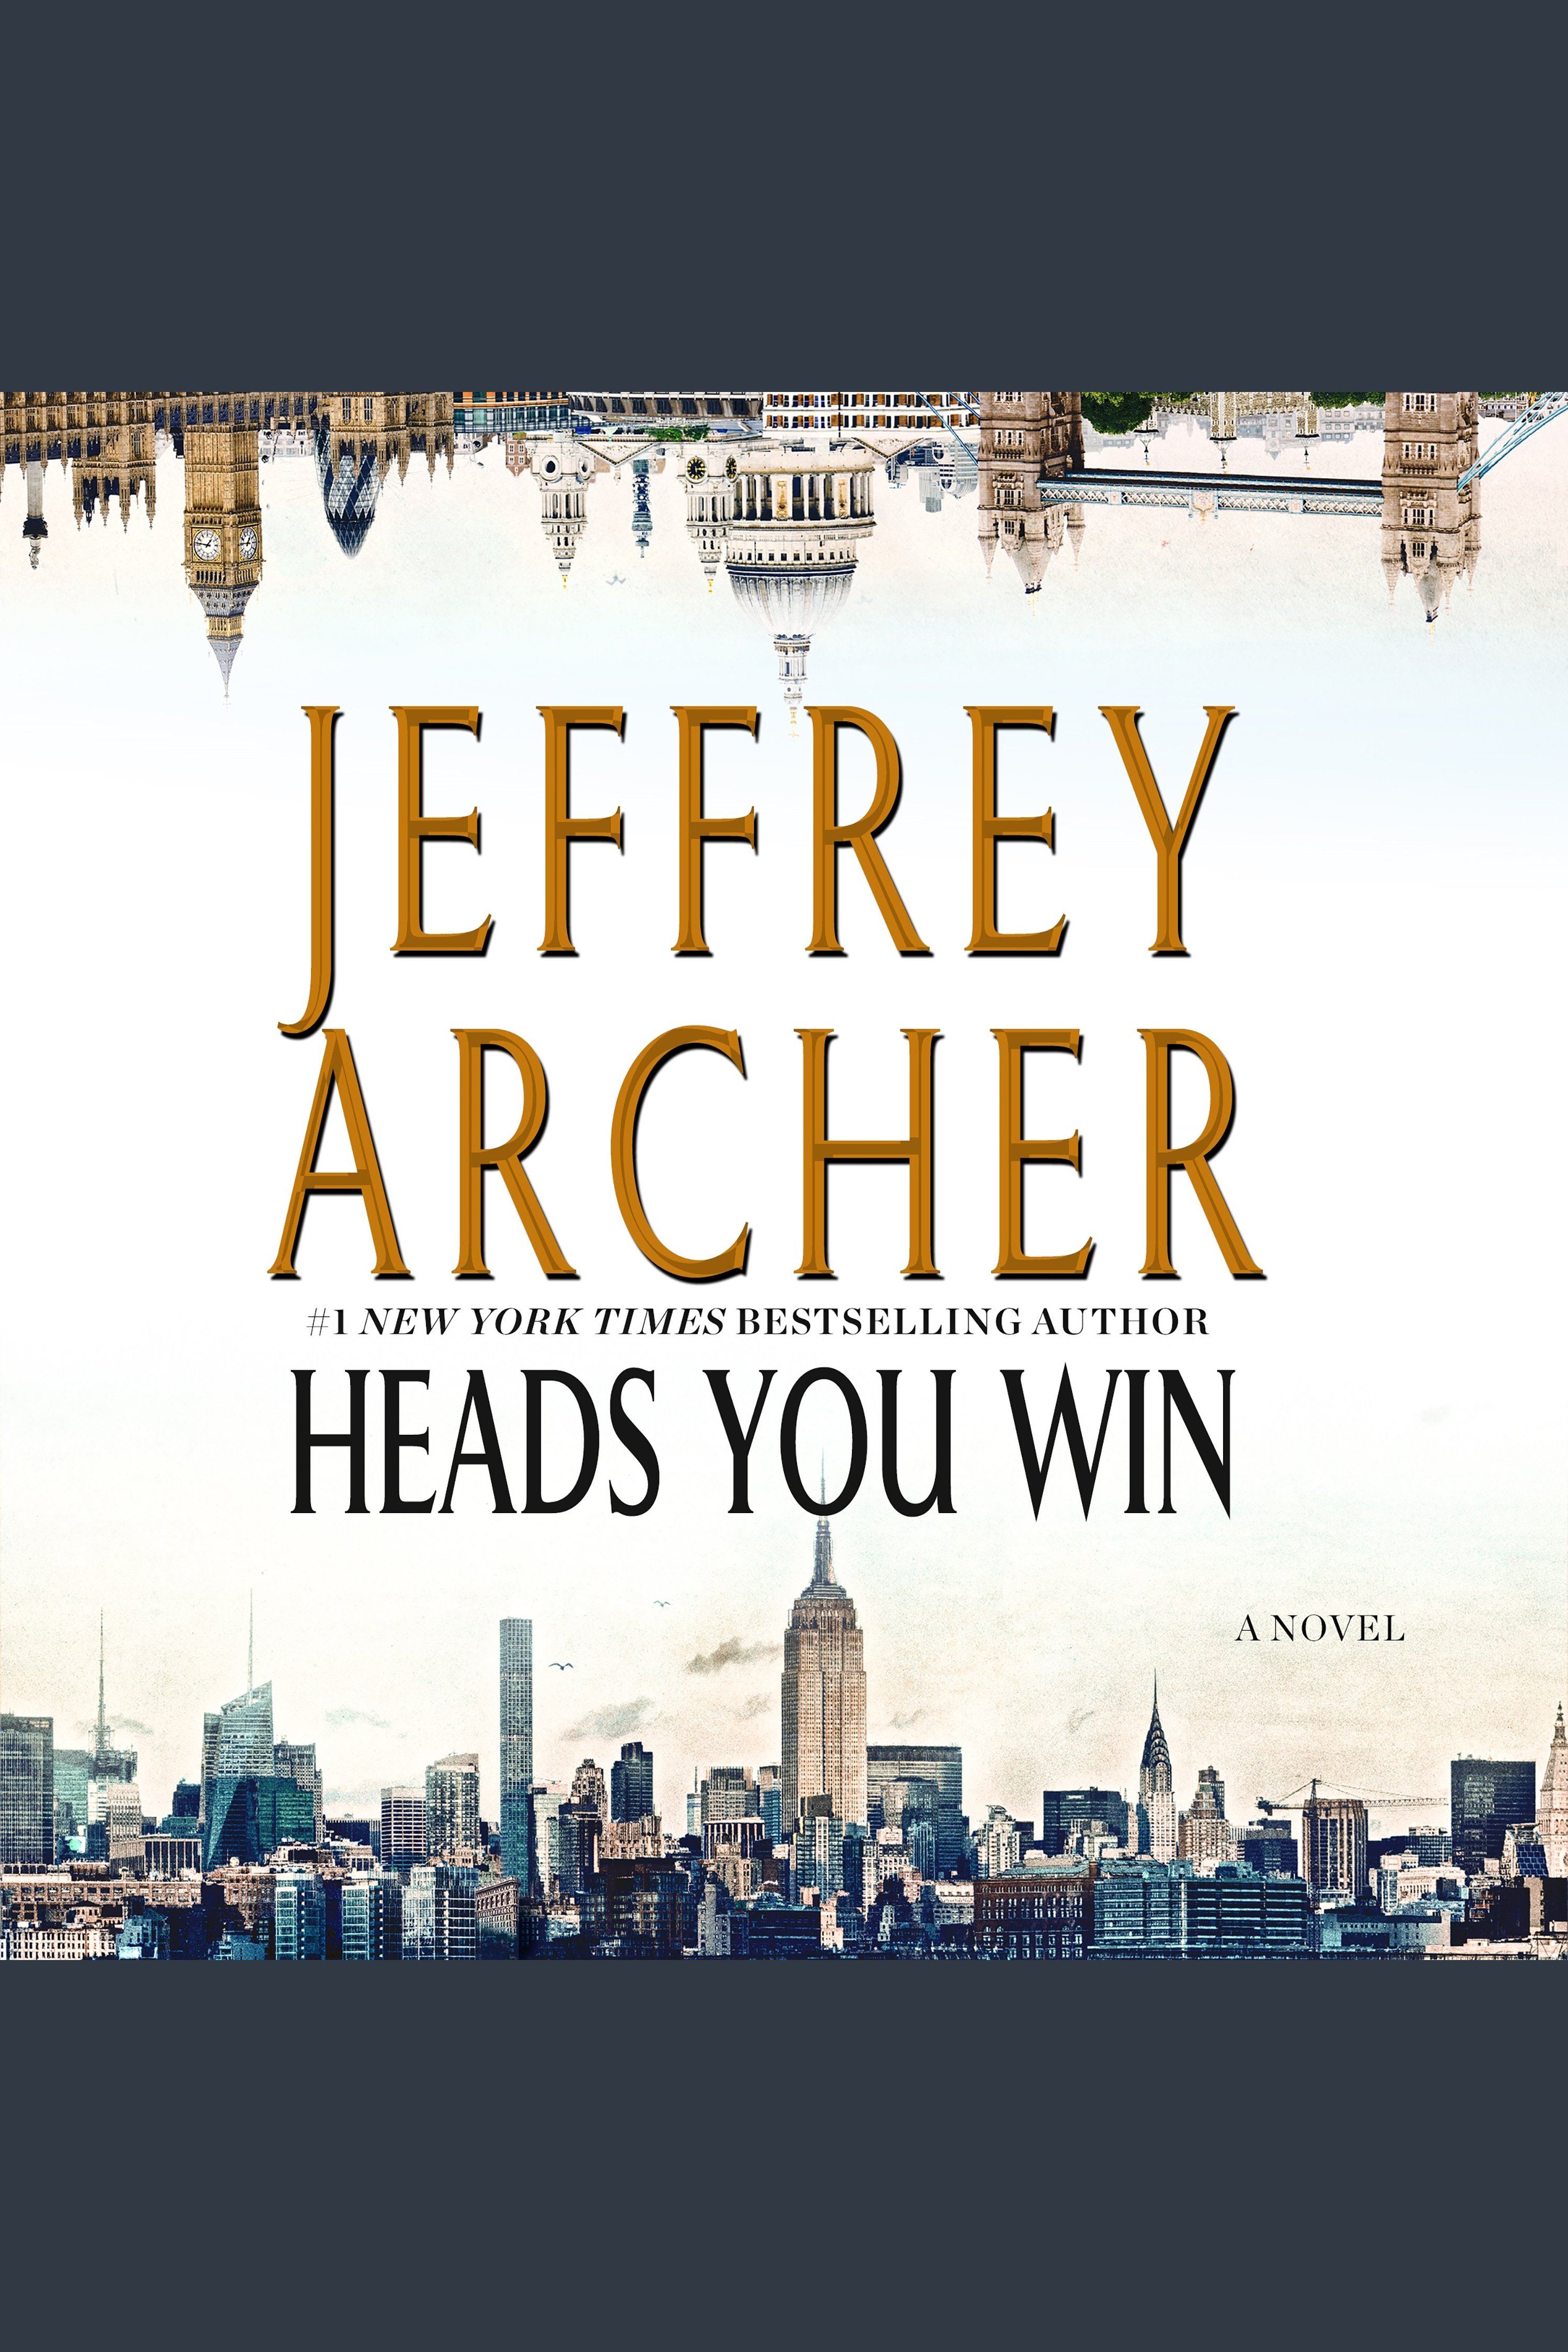 Heads you win cover image